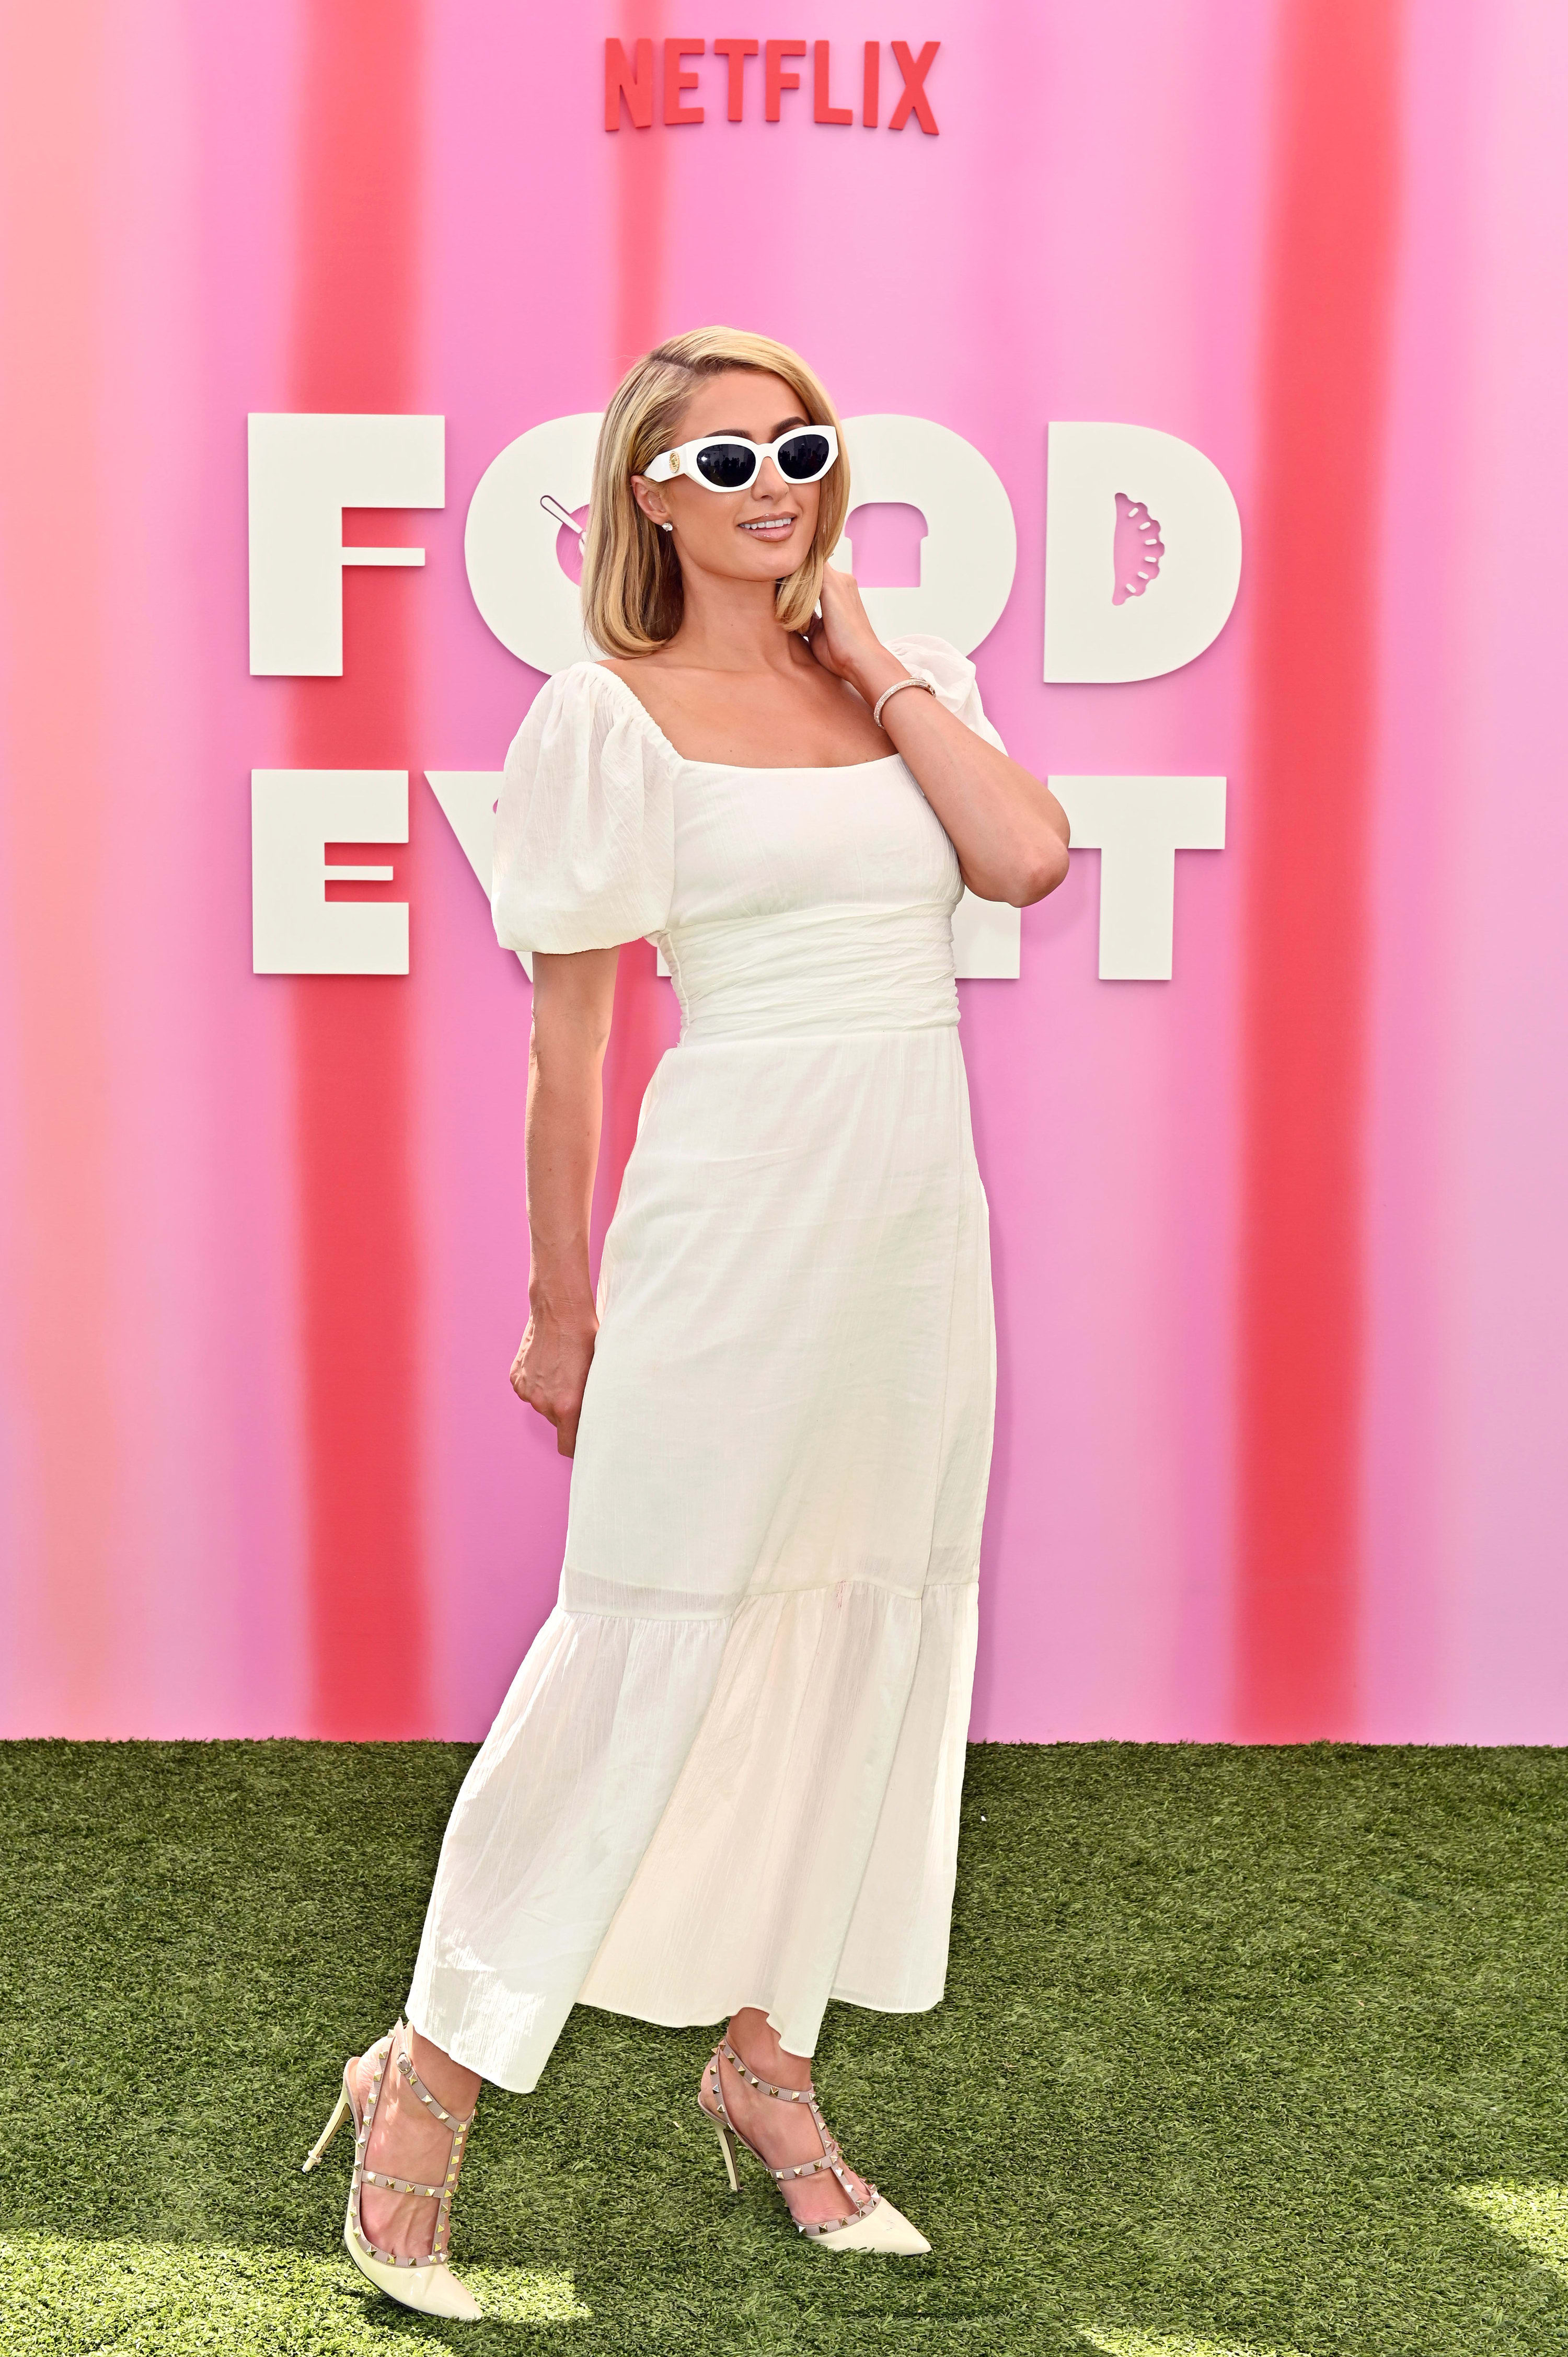 Paris wears a simple white dress with puffy short sleeves, sunglasses, and jeweled heels.